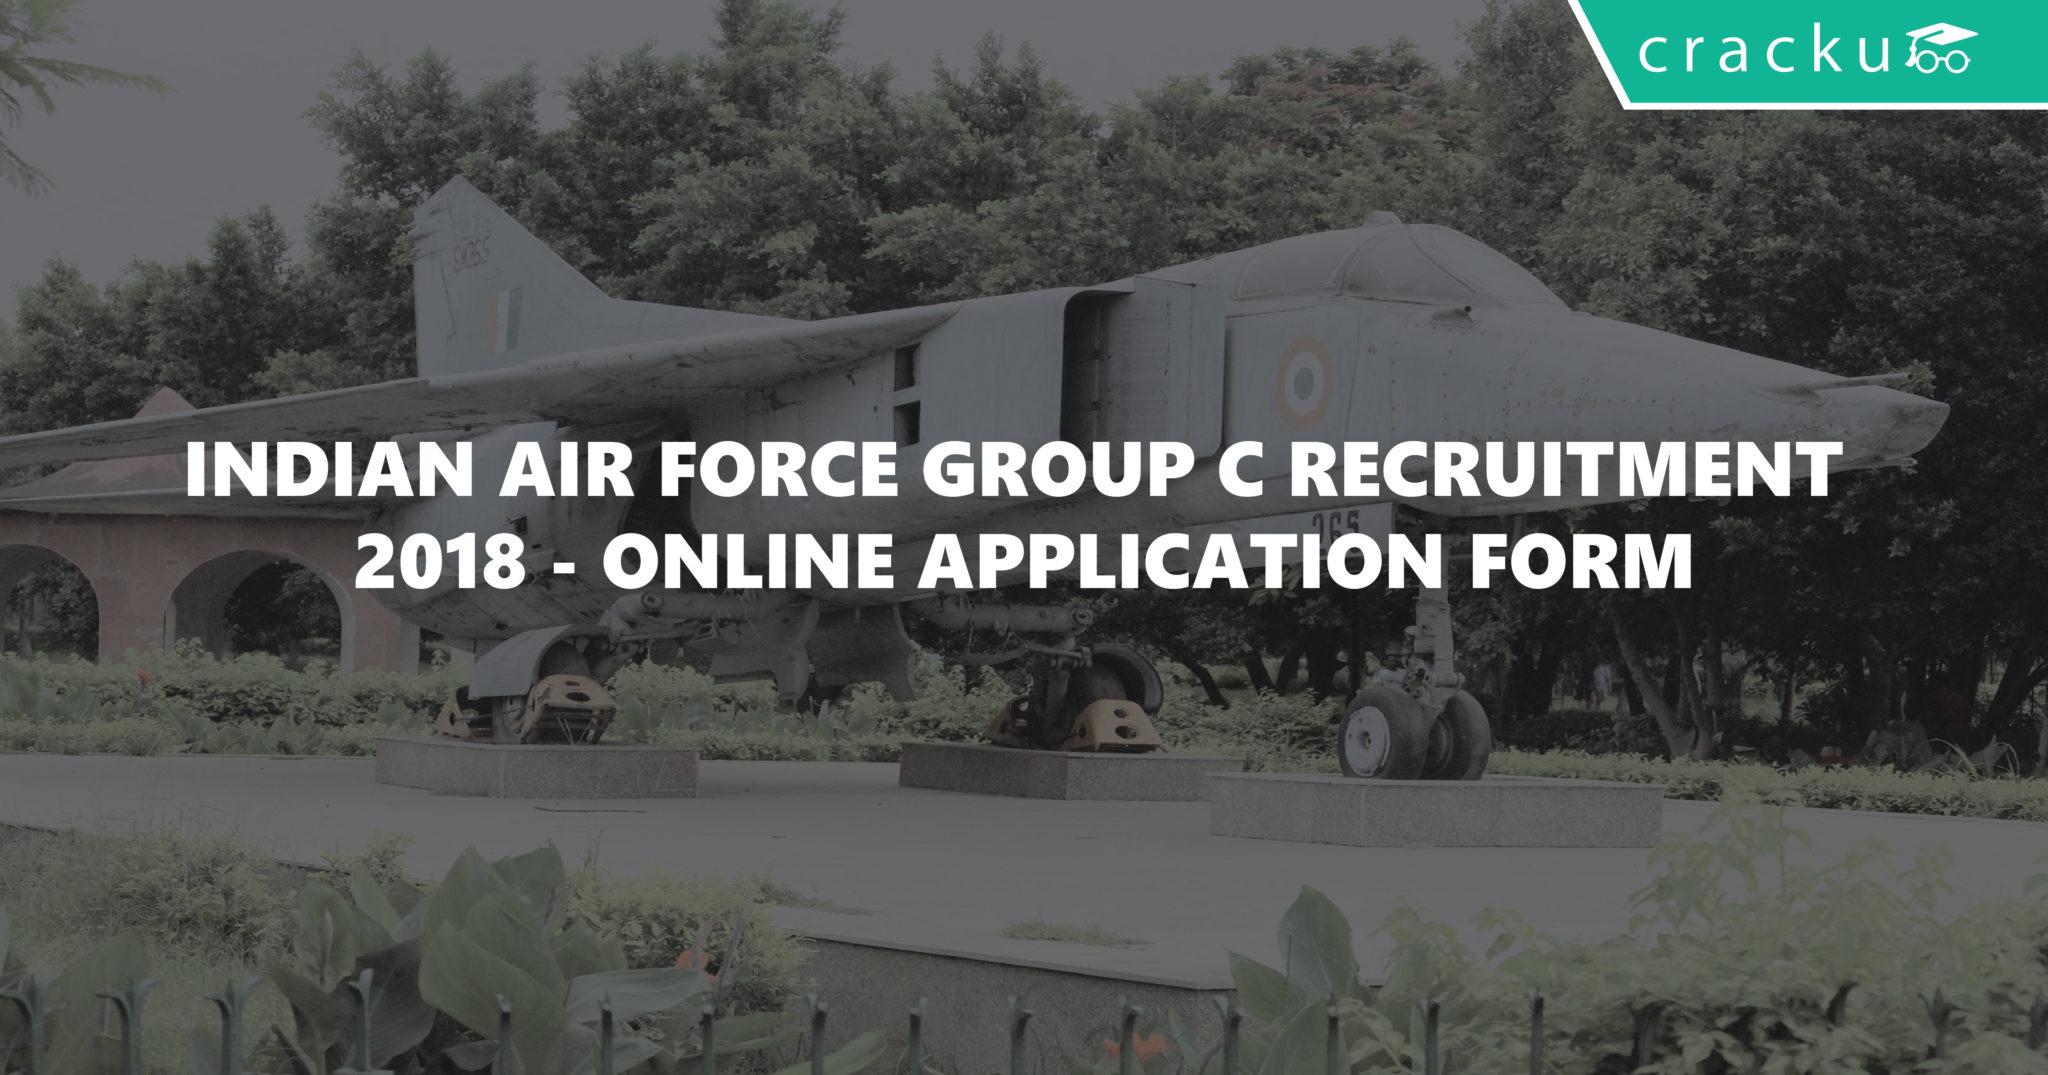 Air india job application form image collections standard form indian air force group c recruitment 2018 mts online application indian air force group c recruitment falaconquin